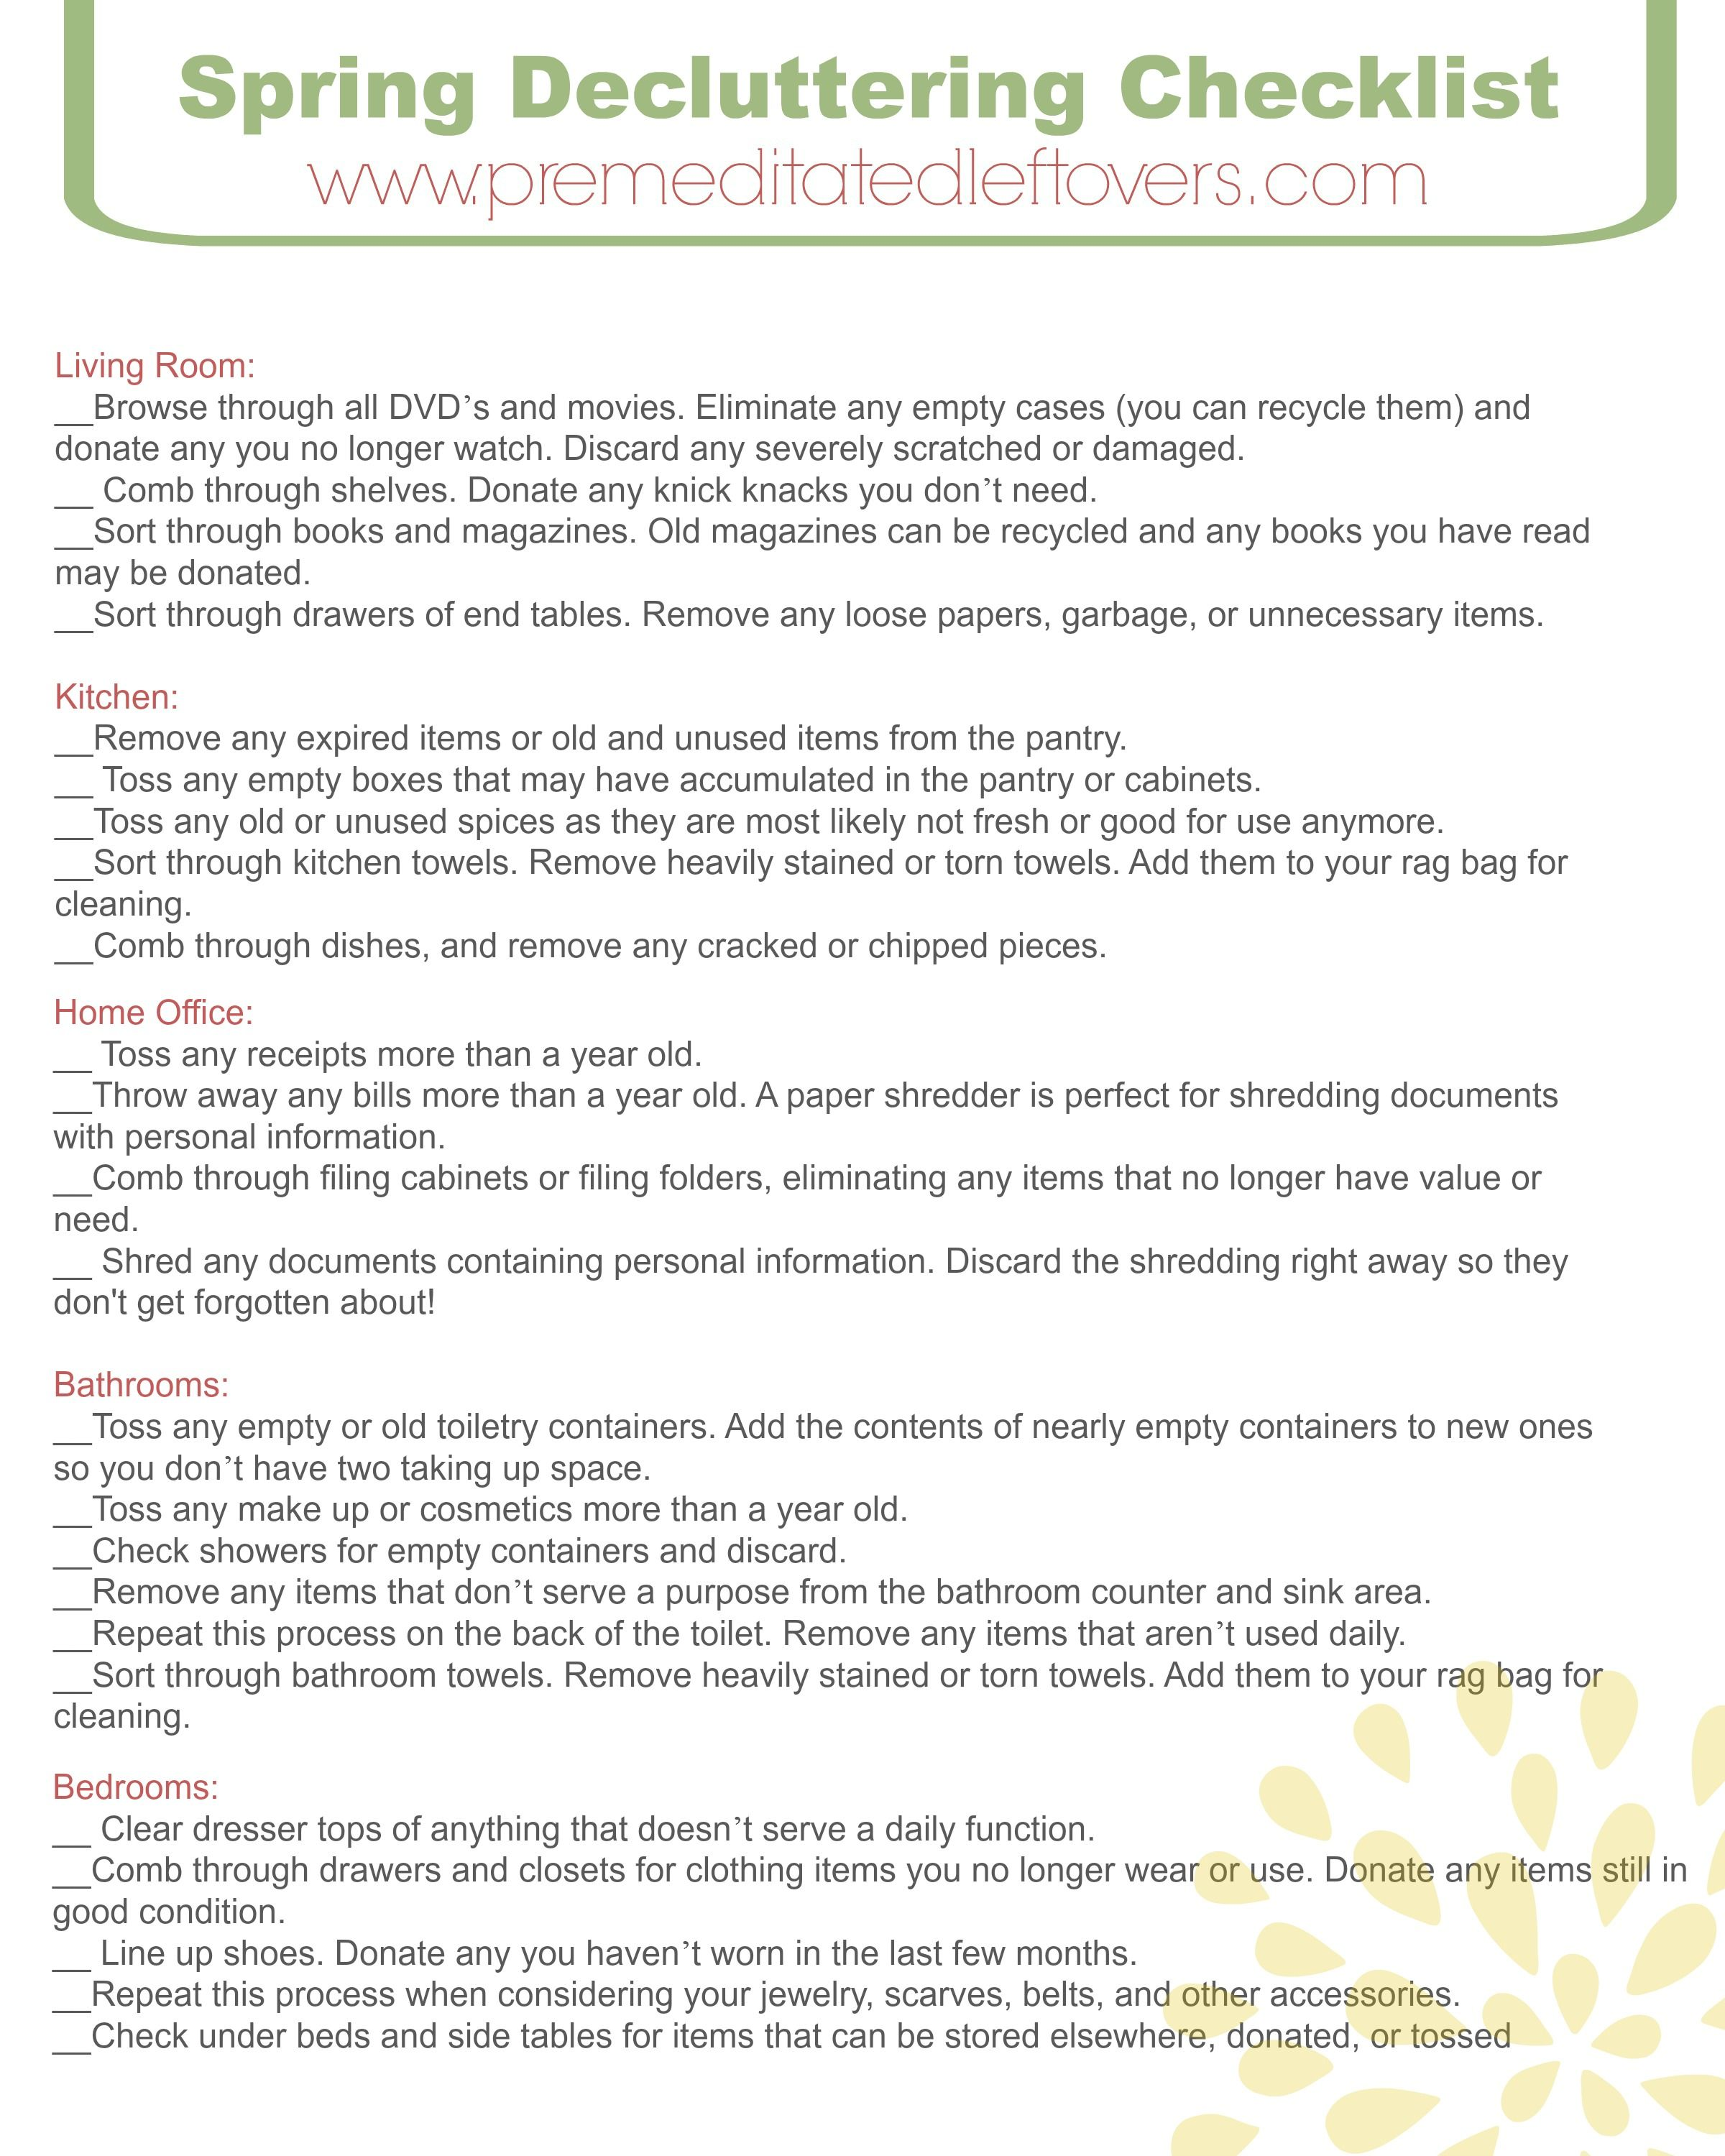 Free Printable Home Decluttering Checklist To Help You Declutter